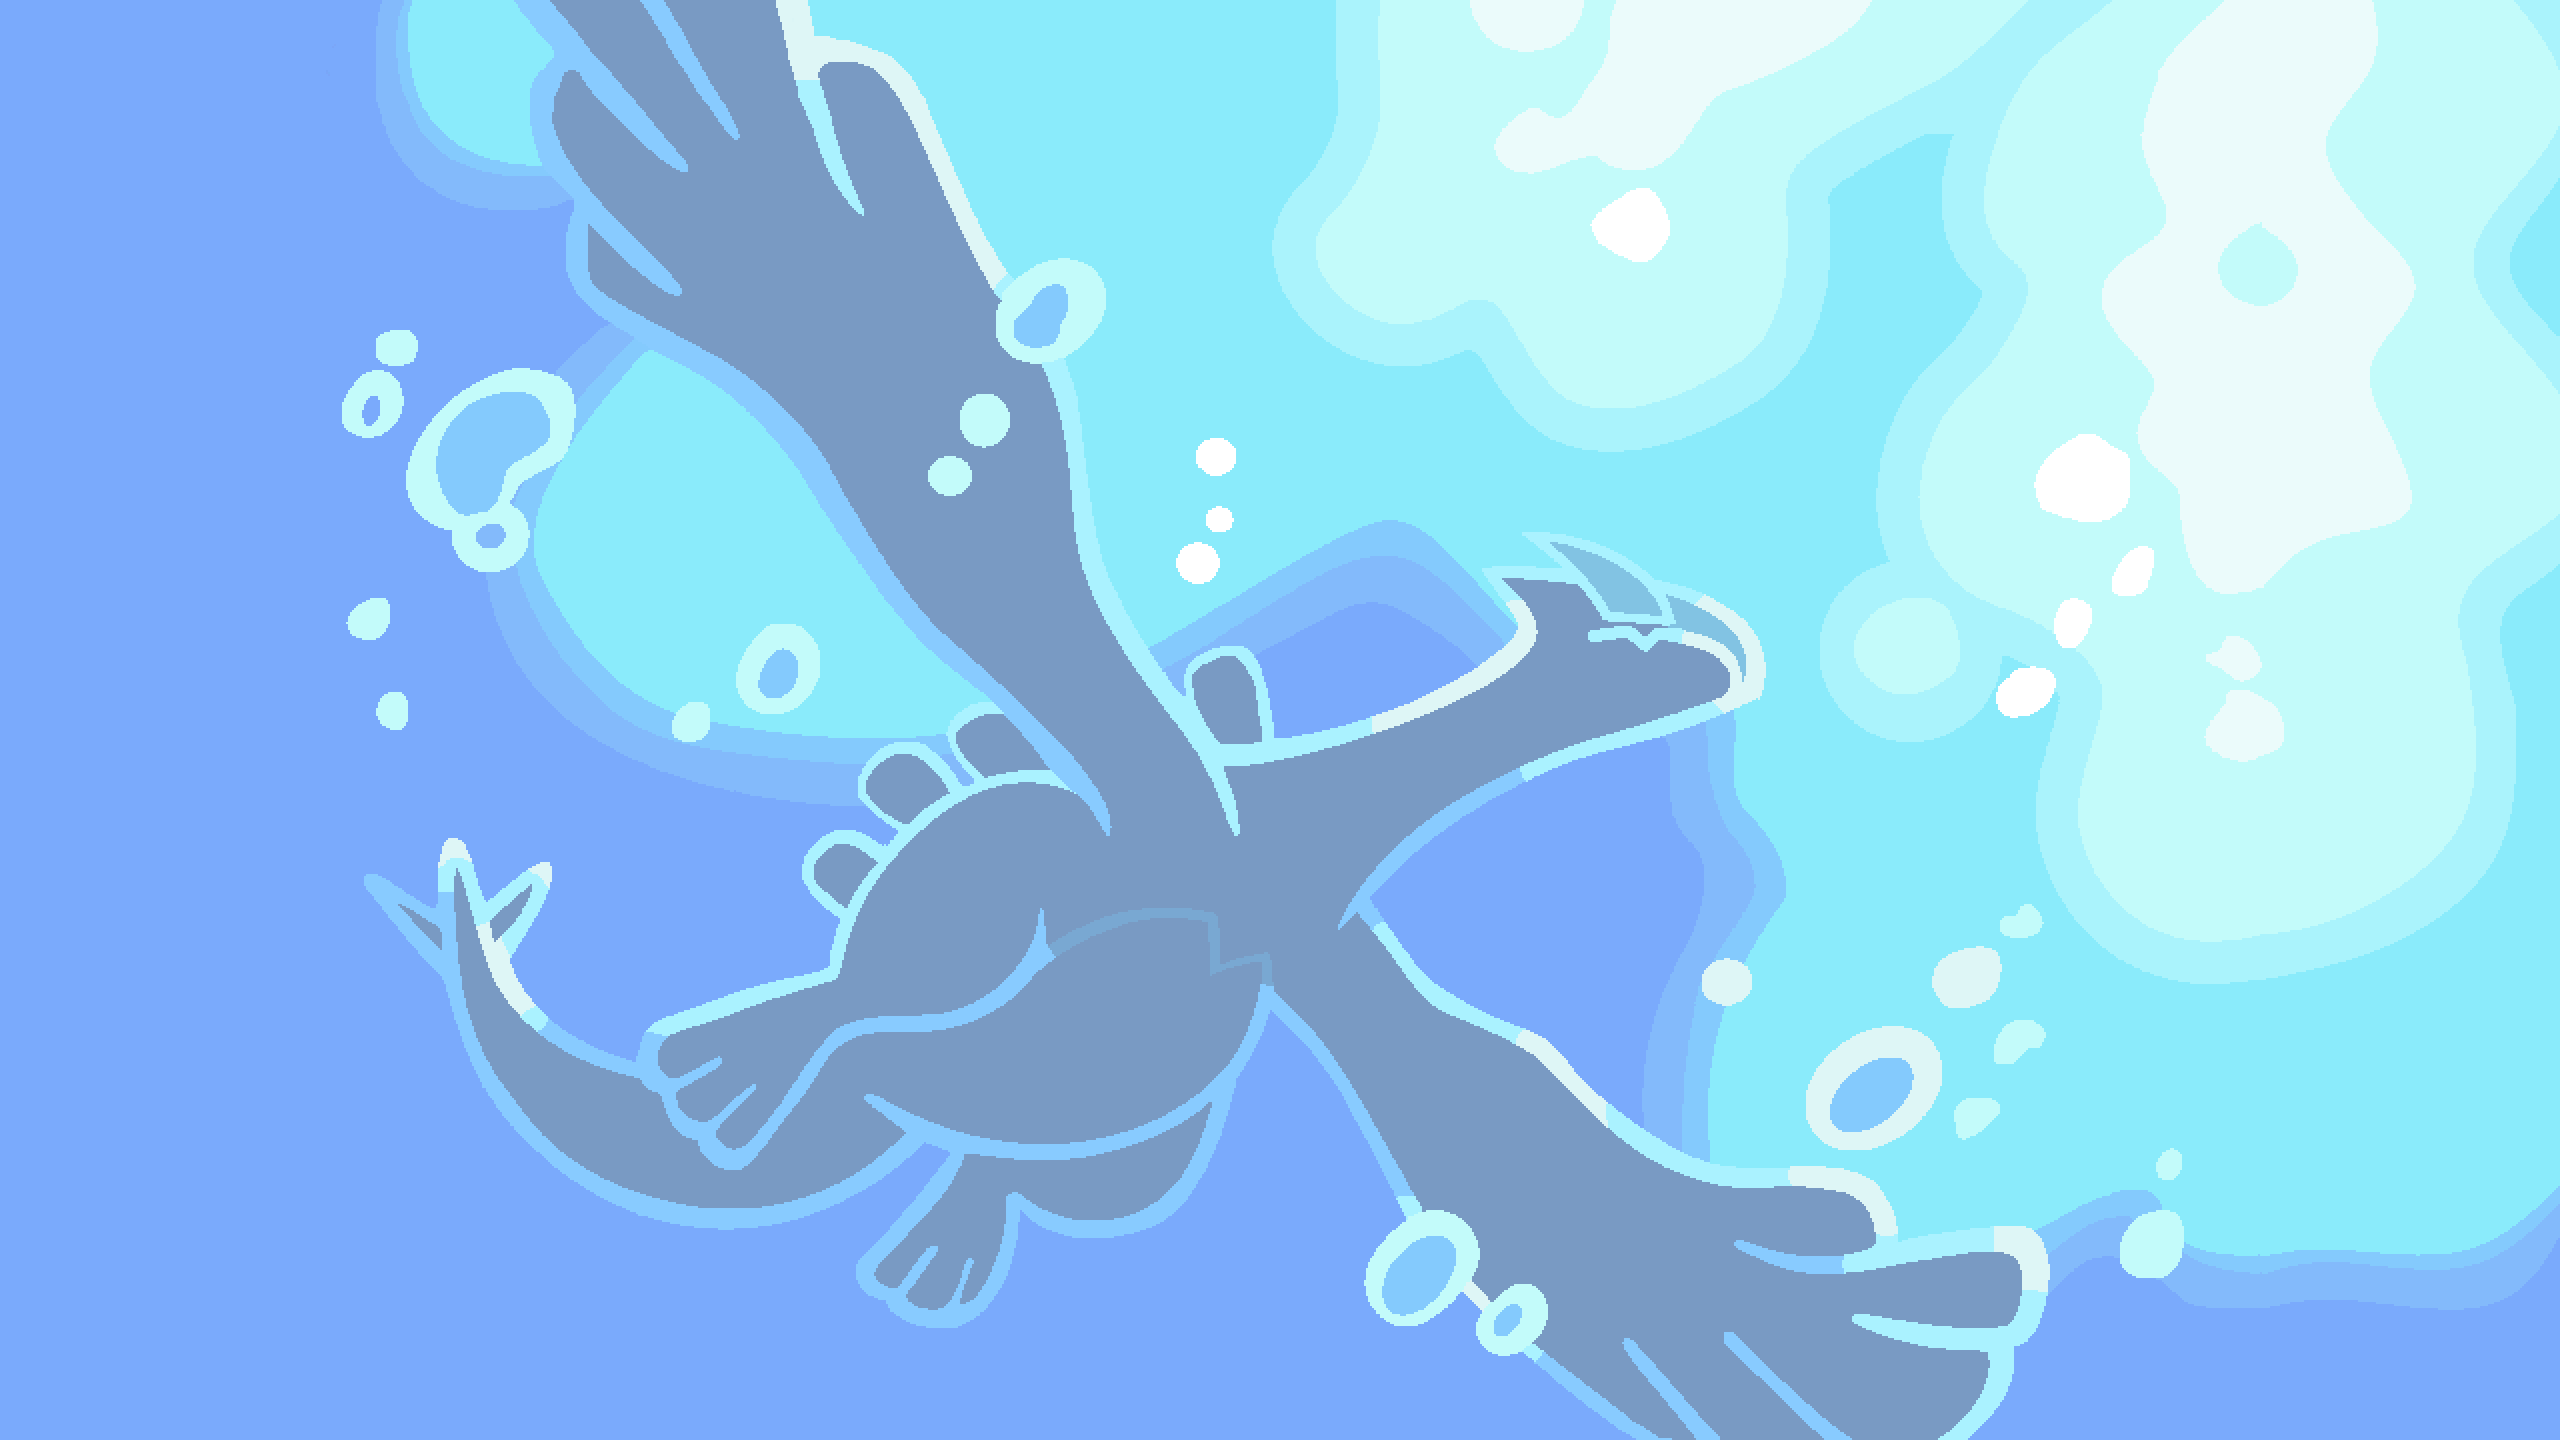 Restored Pokemon Heartgold Soulsilver Wallpapers Mariteaux